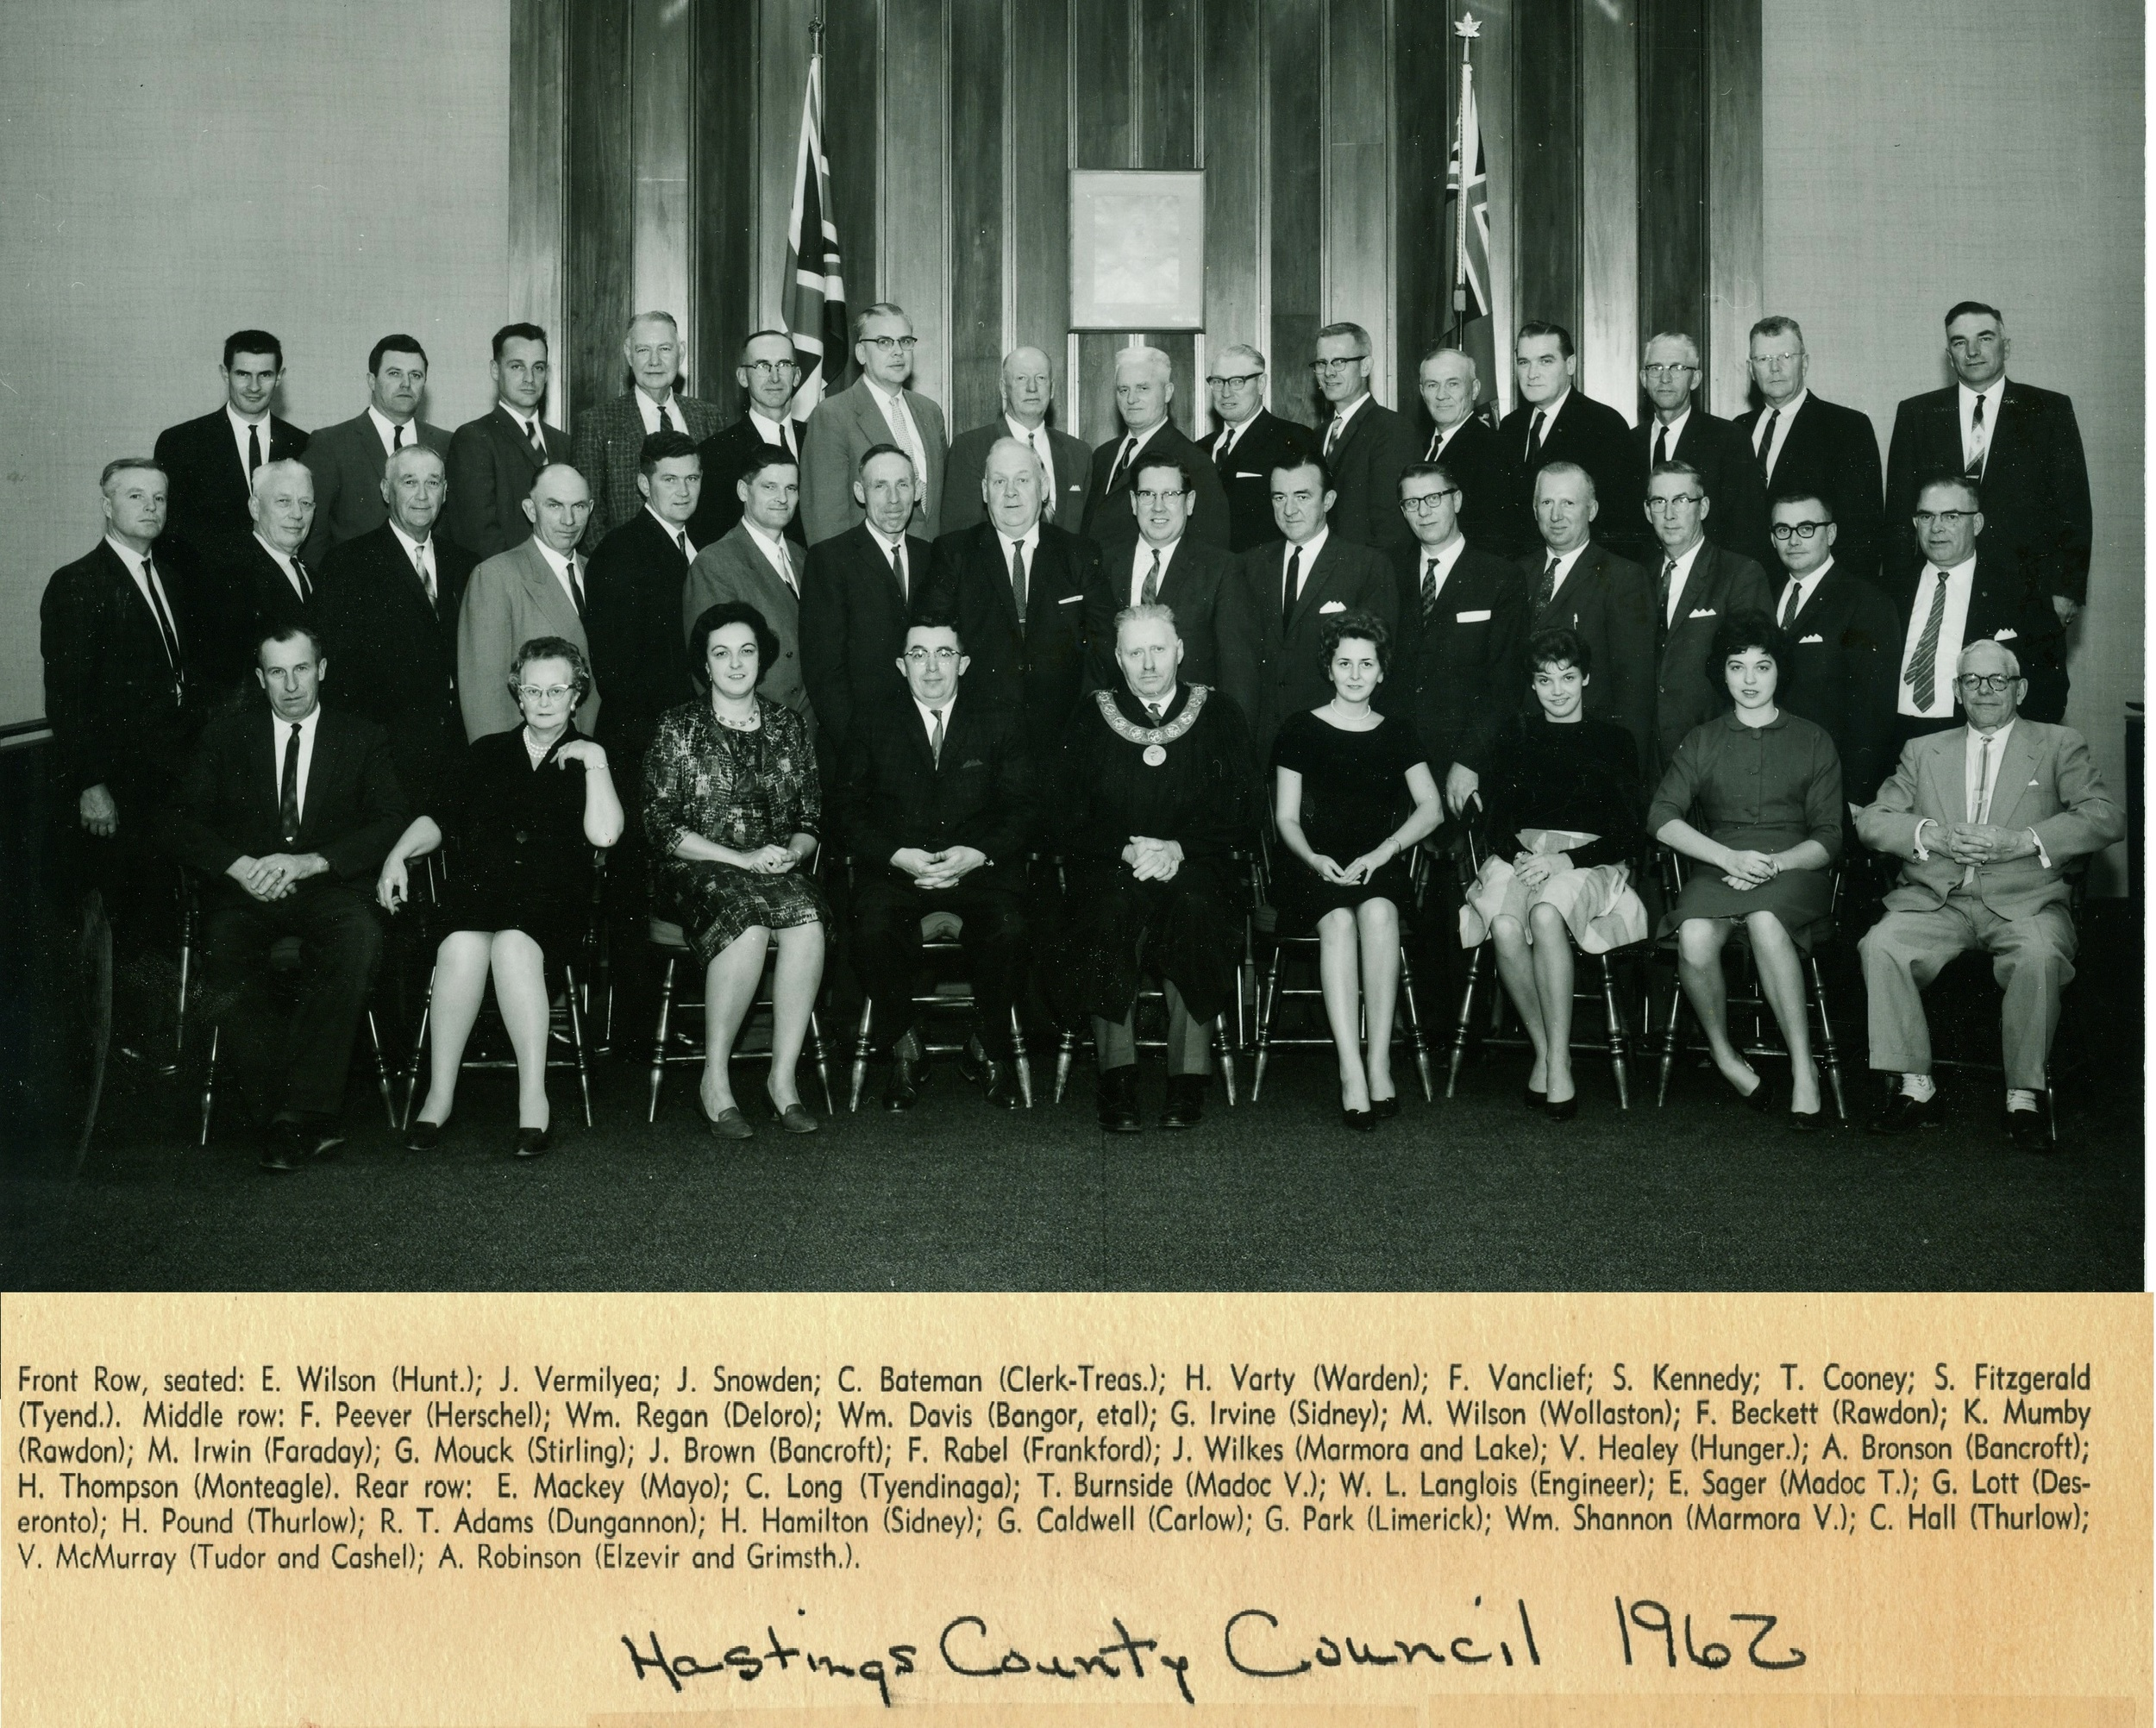 Hastings County Council 1962.jpg